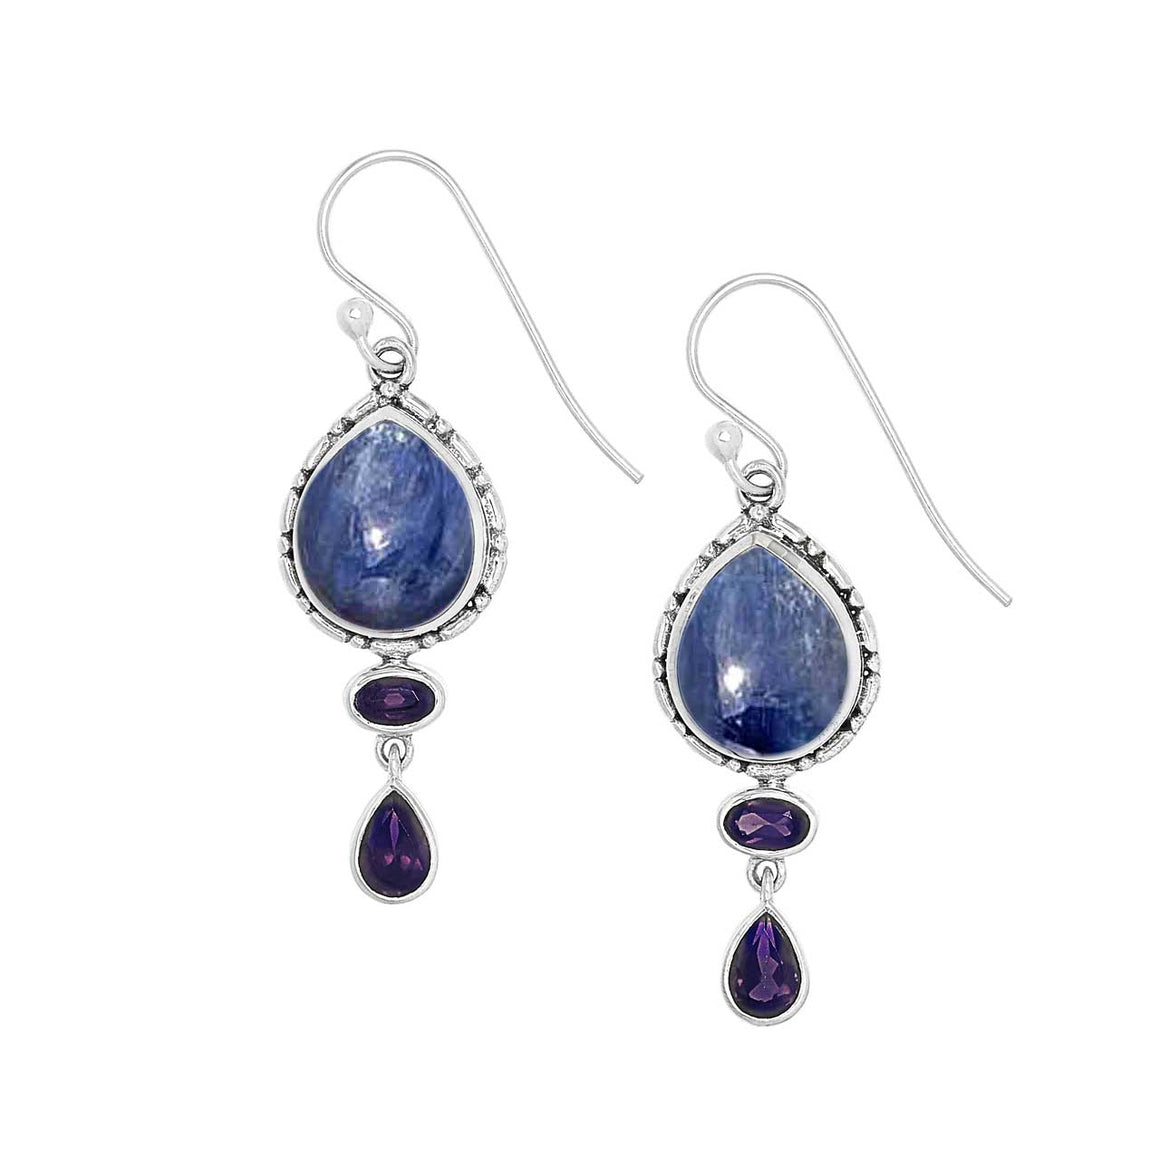 Kyanite and Iolite Drop Earrings